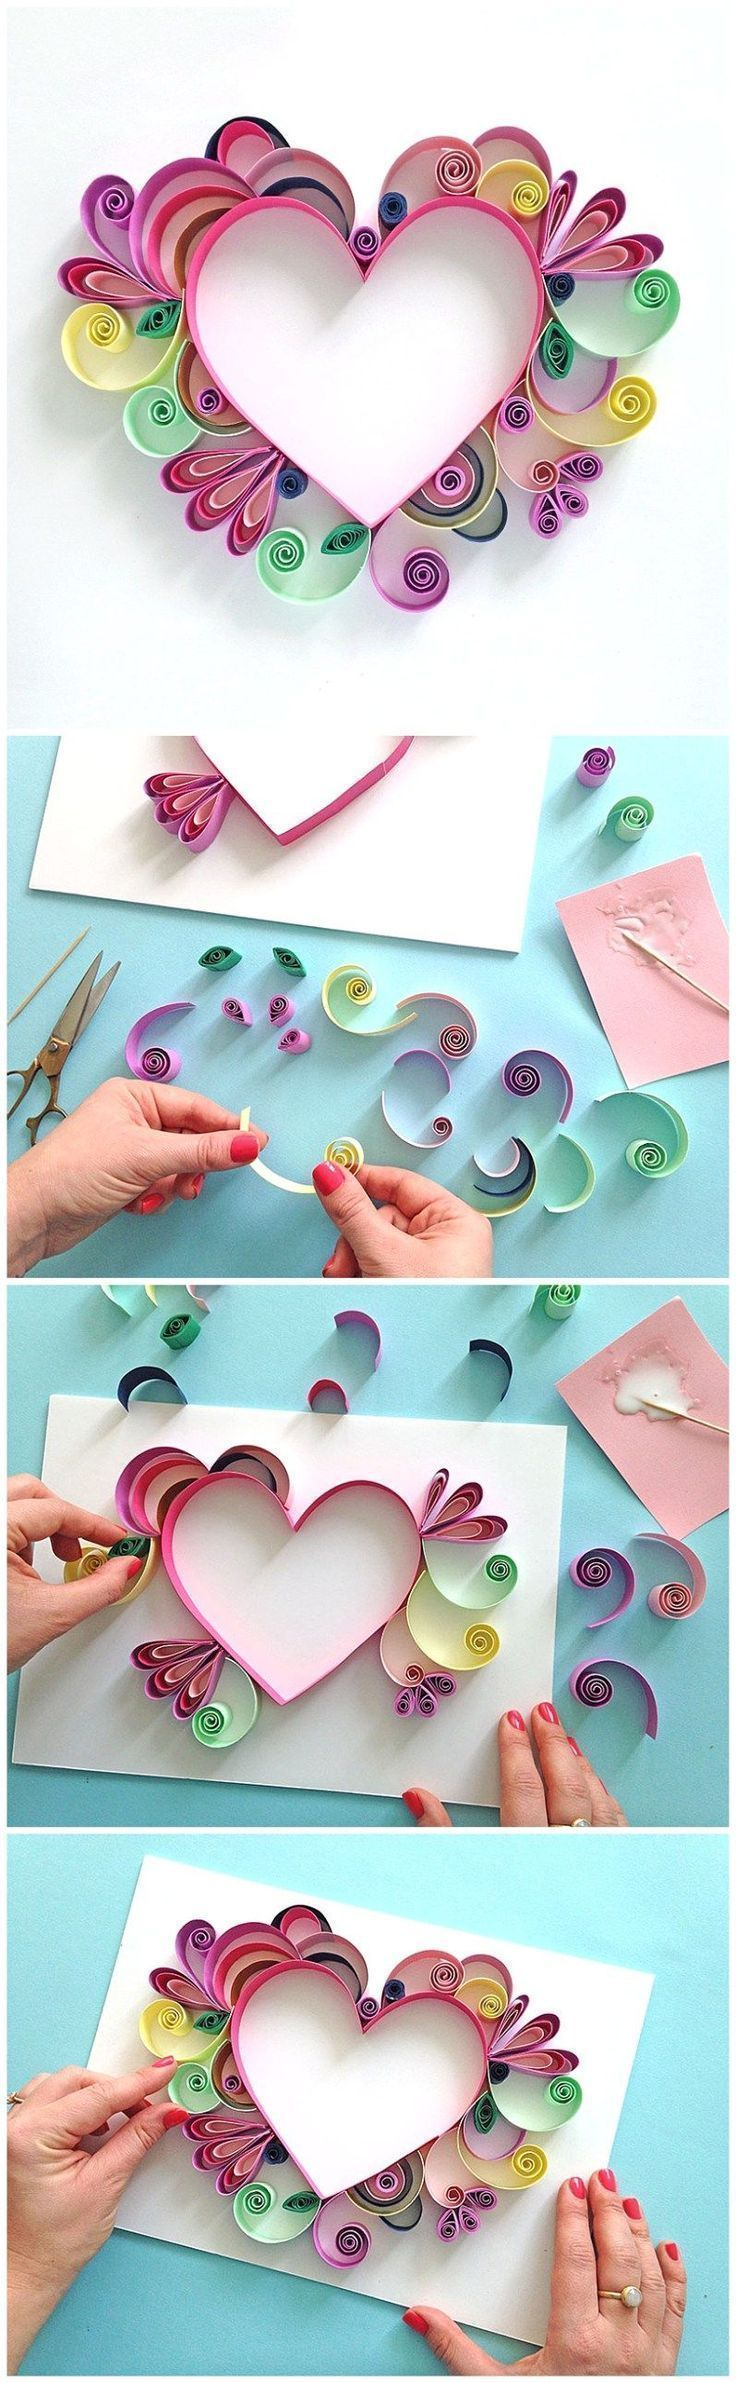 The BEST Do it Yourself Gifts – Fun, Clever and Unique DIY Craft Projects and Ideas for Christmas, Birthdays, Thank You or Any Occasion – Dreaming in DIY Valentine's Gift Ideas for her | Valentine's Gift Ideas for kids | Valentine's Gift Ideas for teachers | Valentine's Gift Ideas for teens | Valentine's Gift Ideas unique | Valentine's Gift Ideas for husband | Valentine's Gift Ideas creative | Valentine's Gift Ideas for wife | Valentine's Gift Ideas handmade | Valentine's Gift Ideas pictures